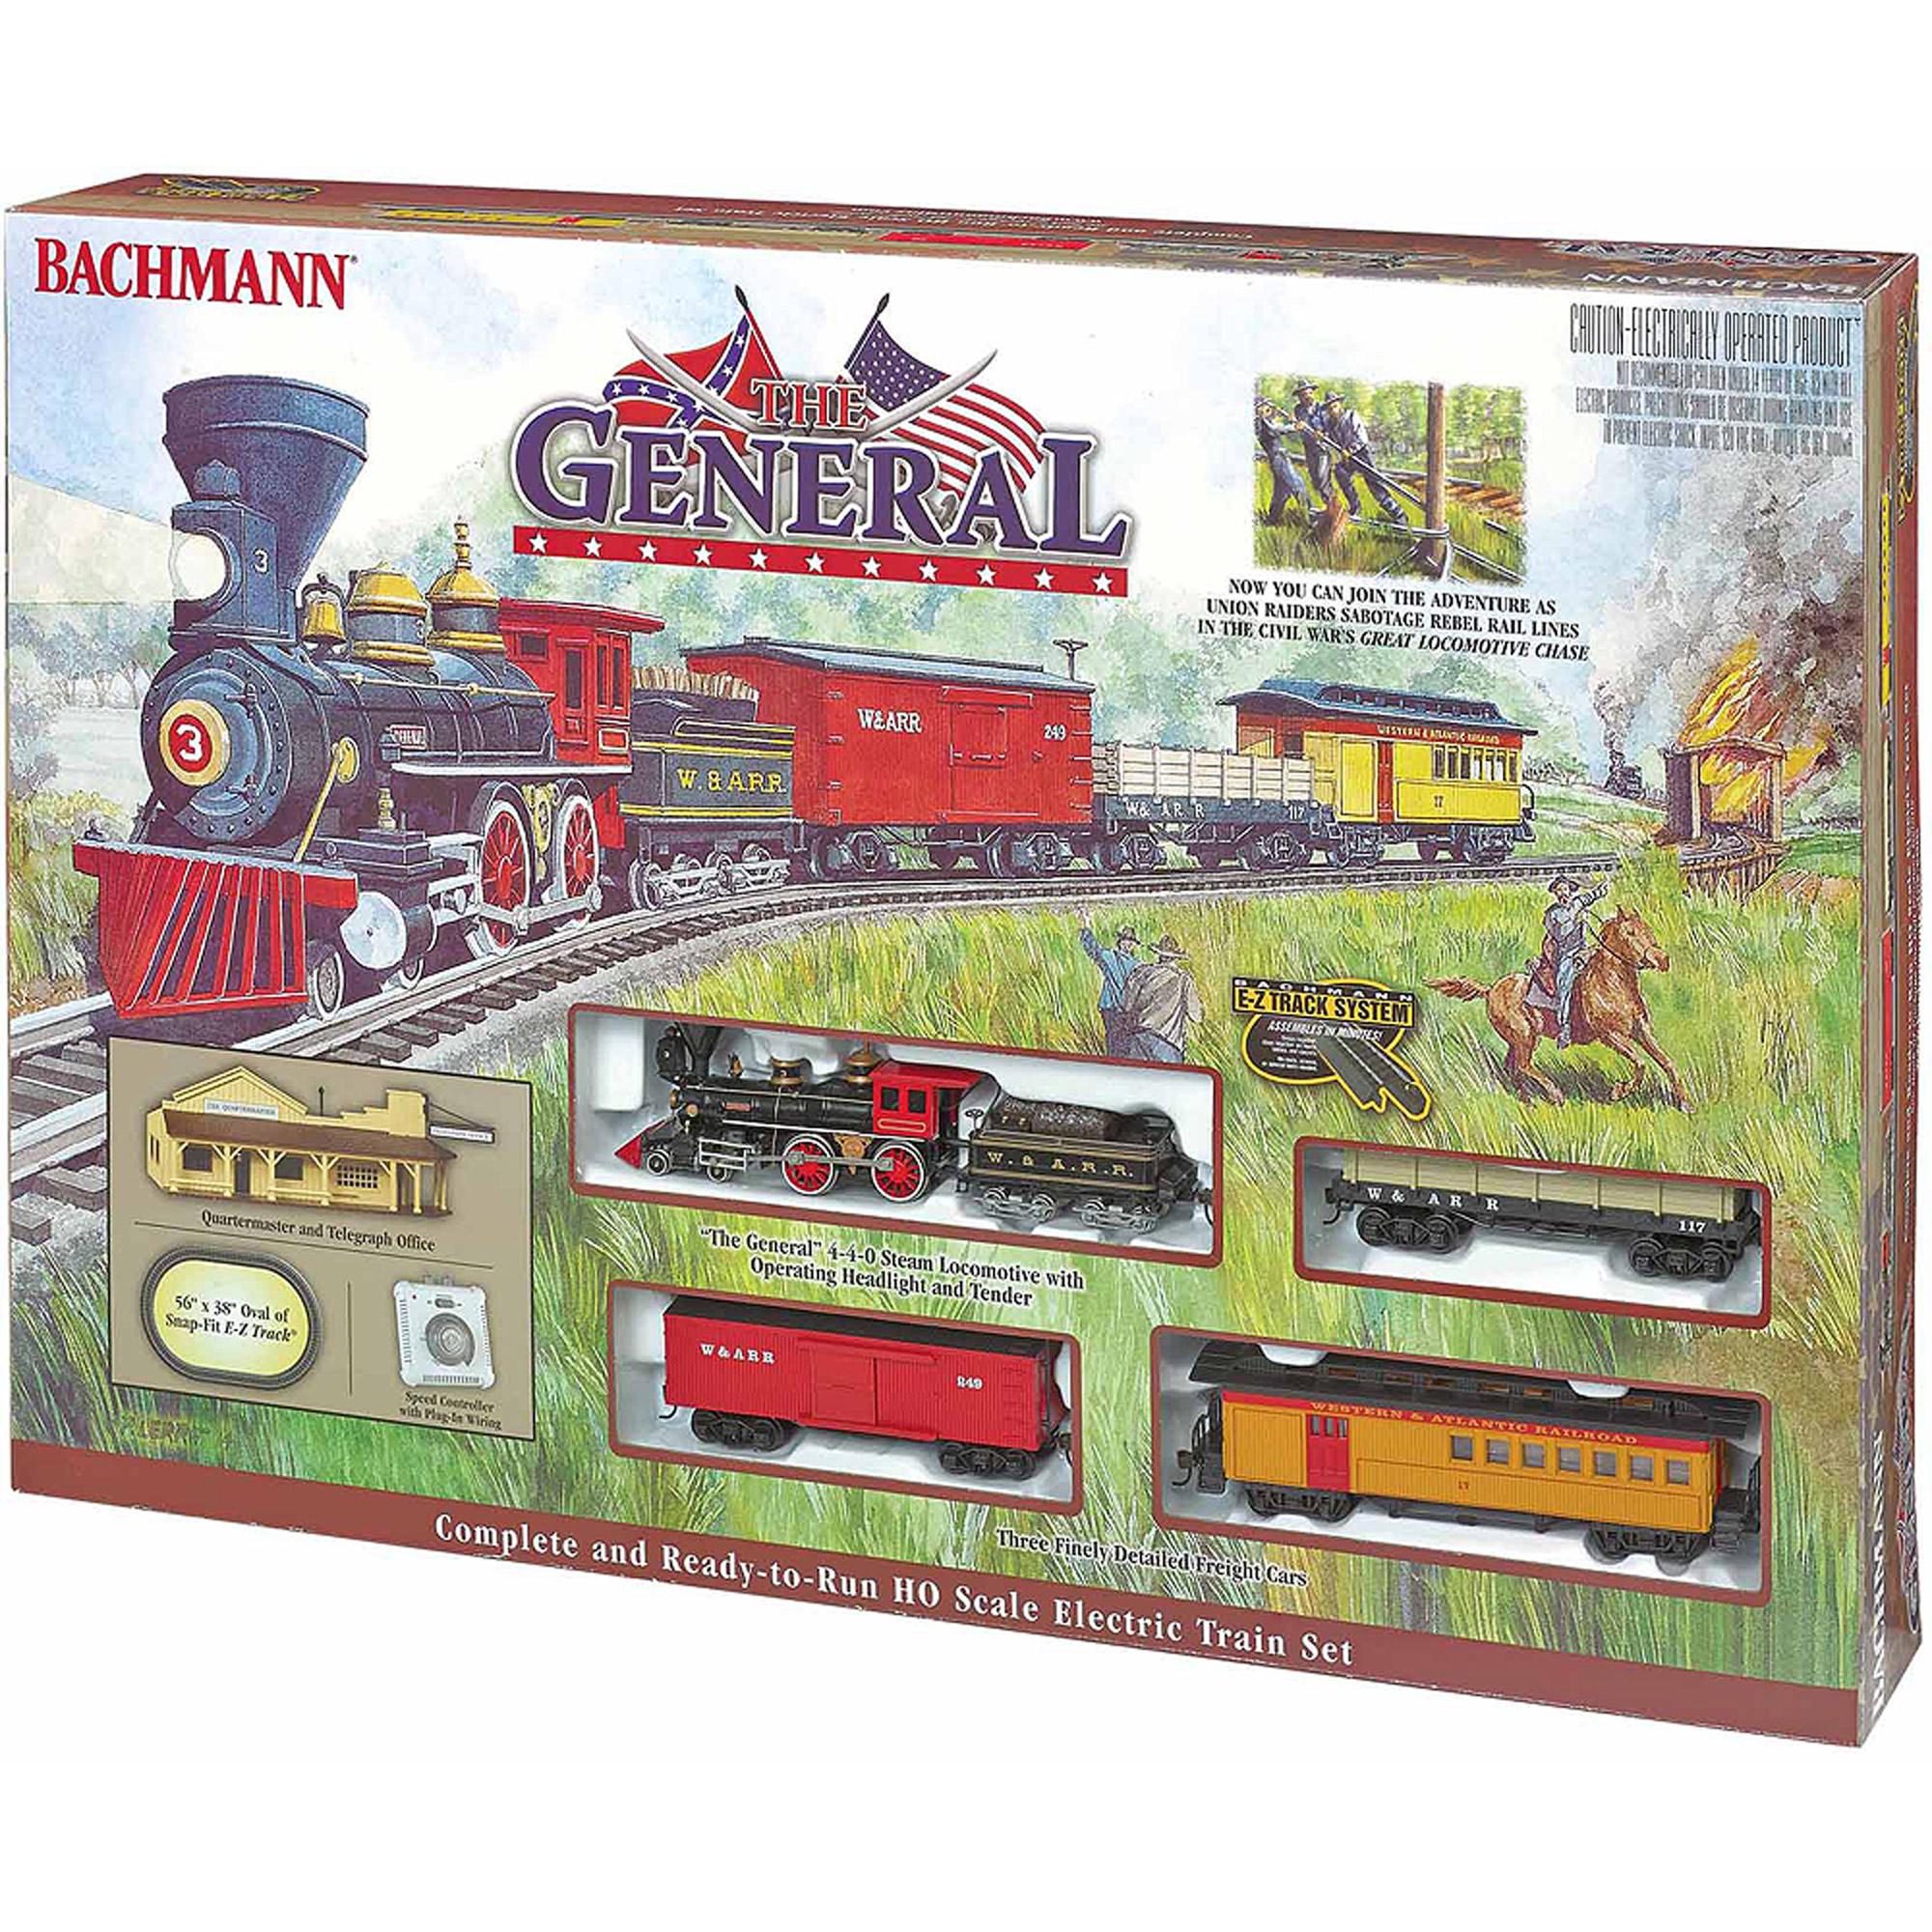 Bachmann Trains The General, HO Scale Ready-To-Run Electric Train Set